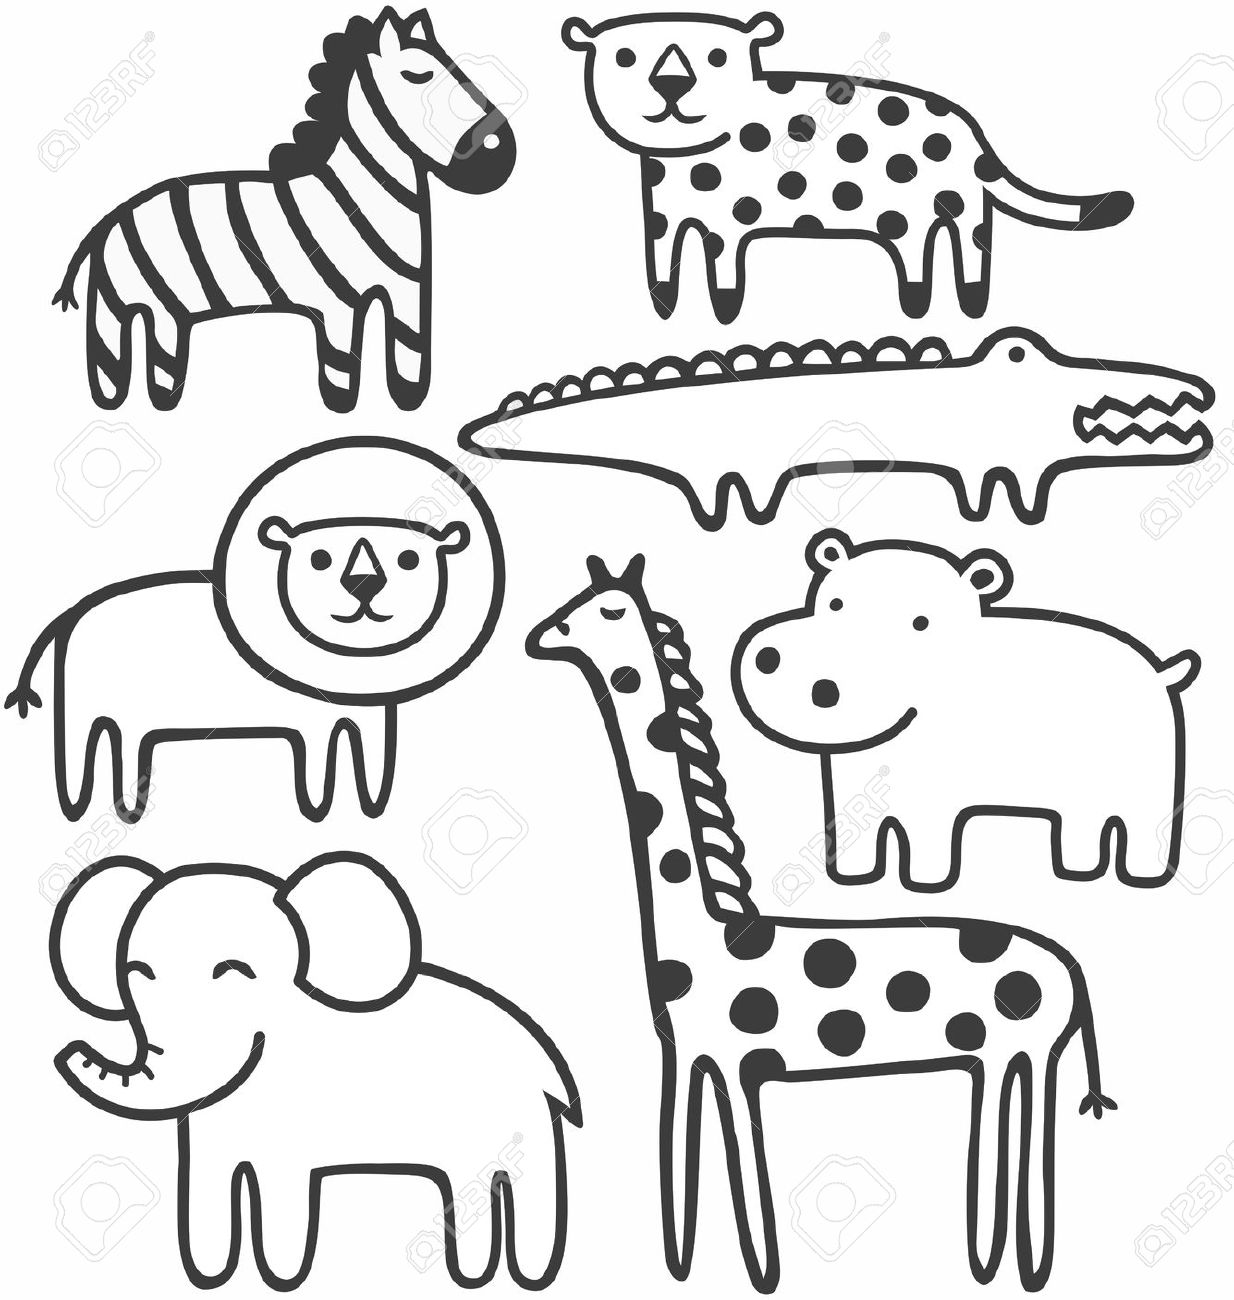 Zoo Animals Black And White Clipart.